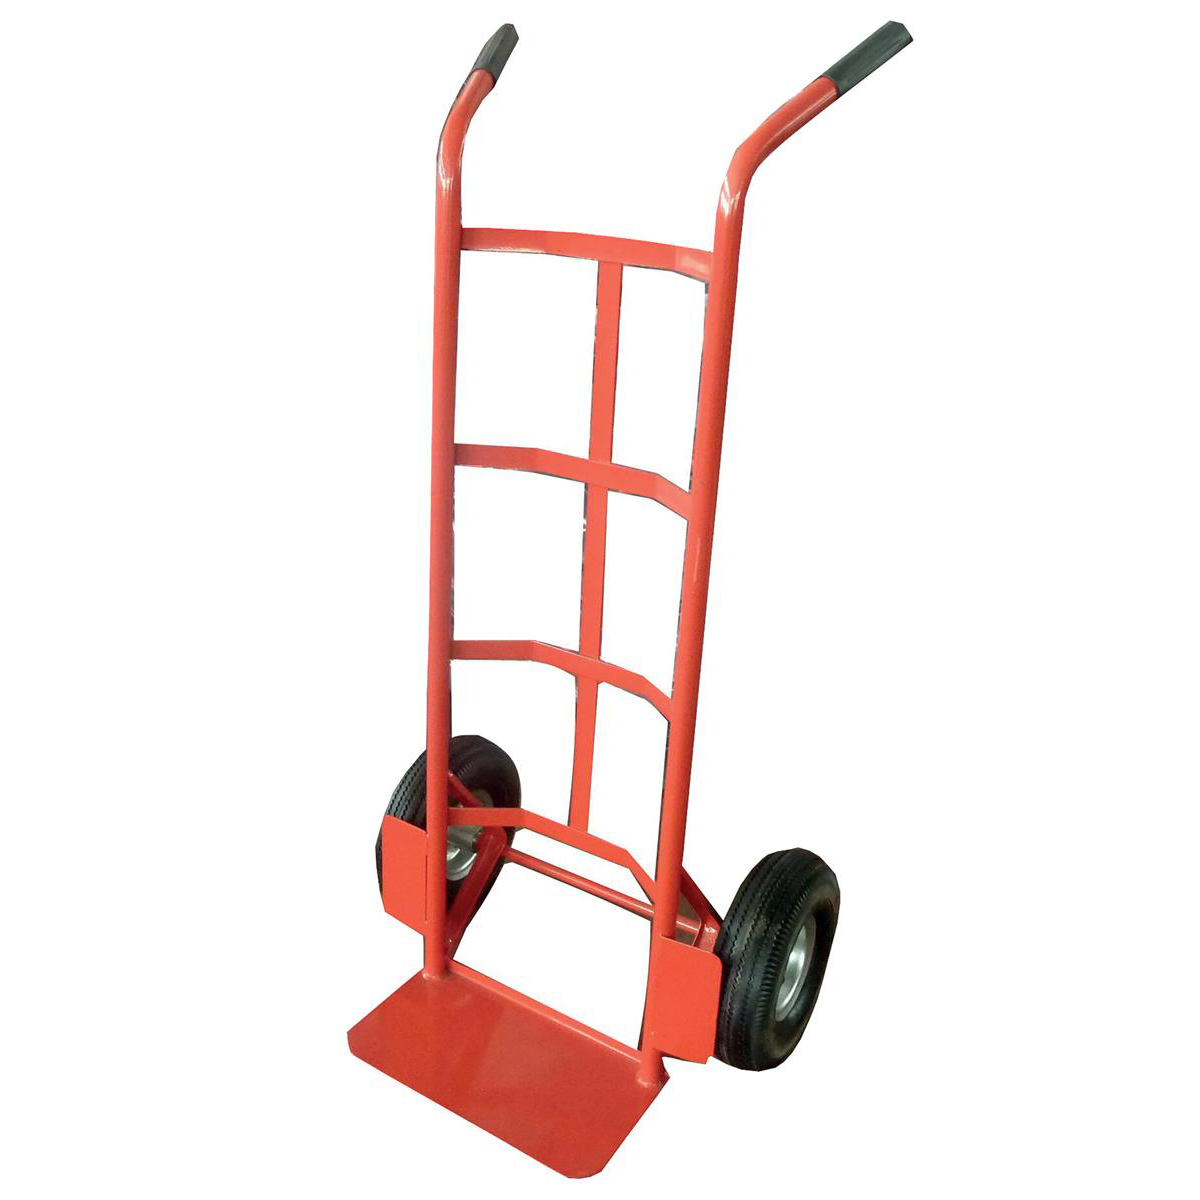 Hand Trolley Heavy-duty Capacity 200kg Wheel 255mm Foot Size W555xL425mm Red